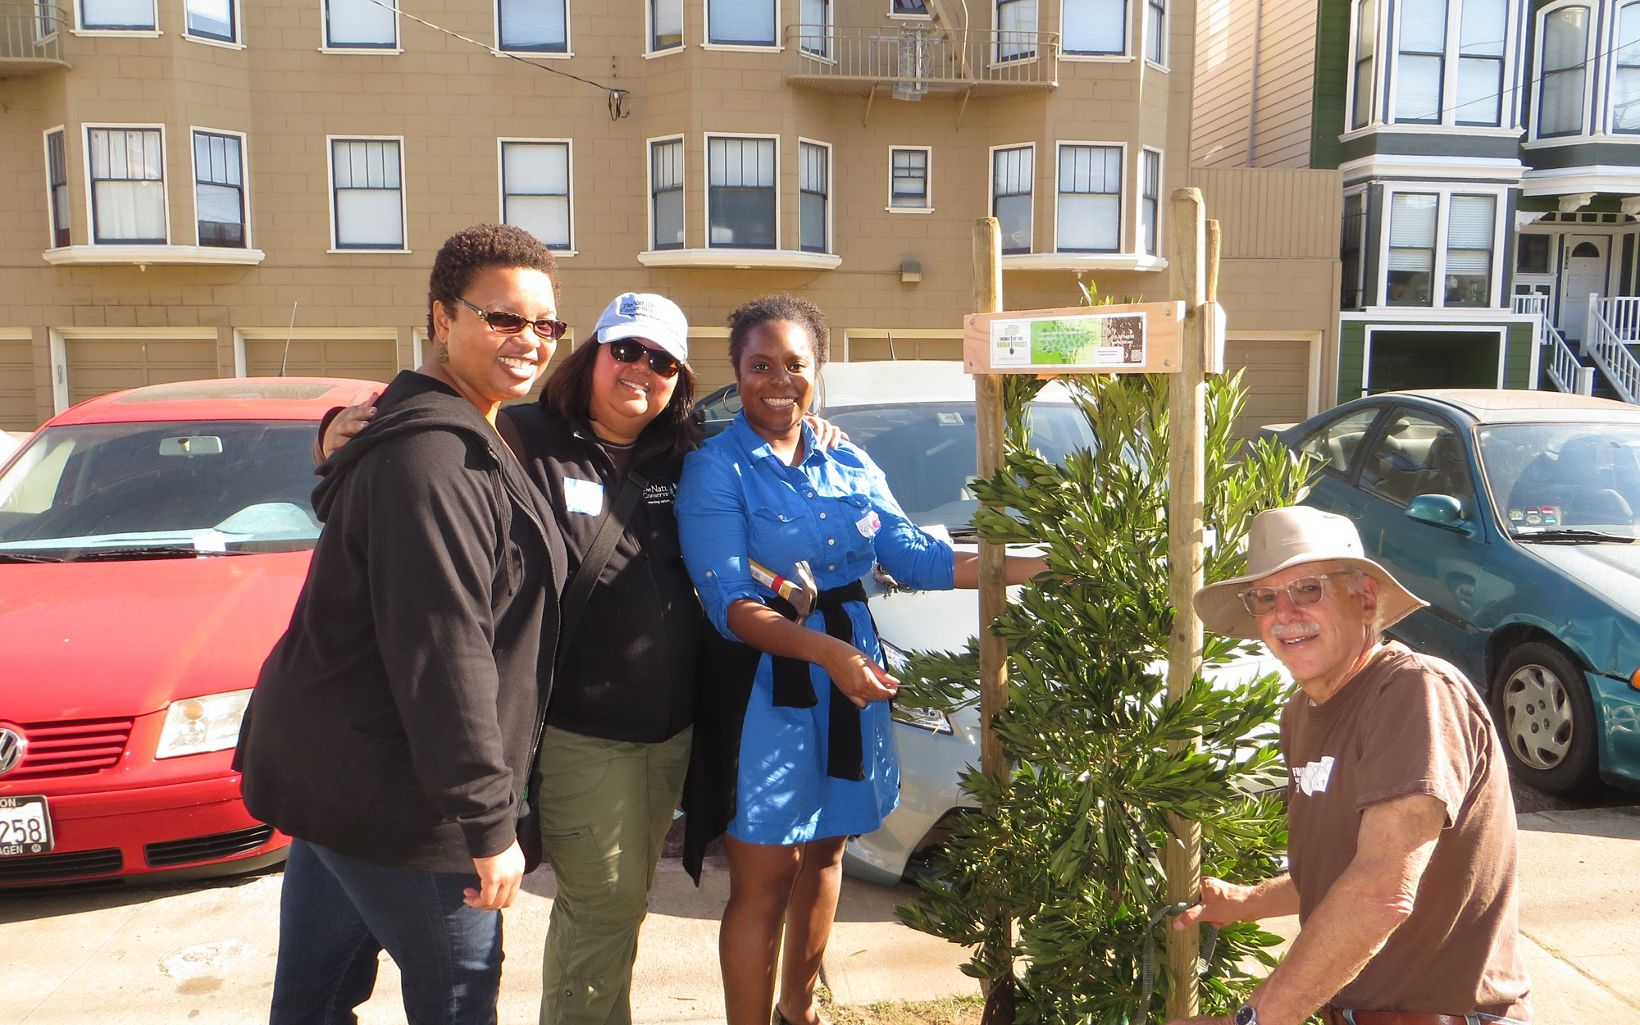 Volunteers help plant trees in San Francisco at a 2013 event organized by Odwalla and The Nature Conservancy.